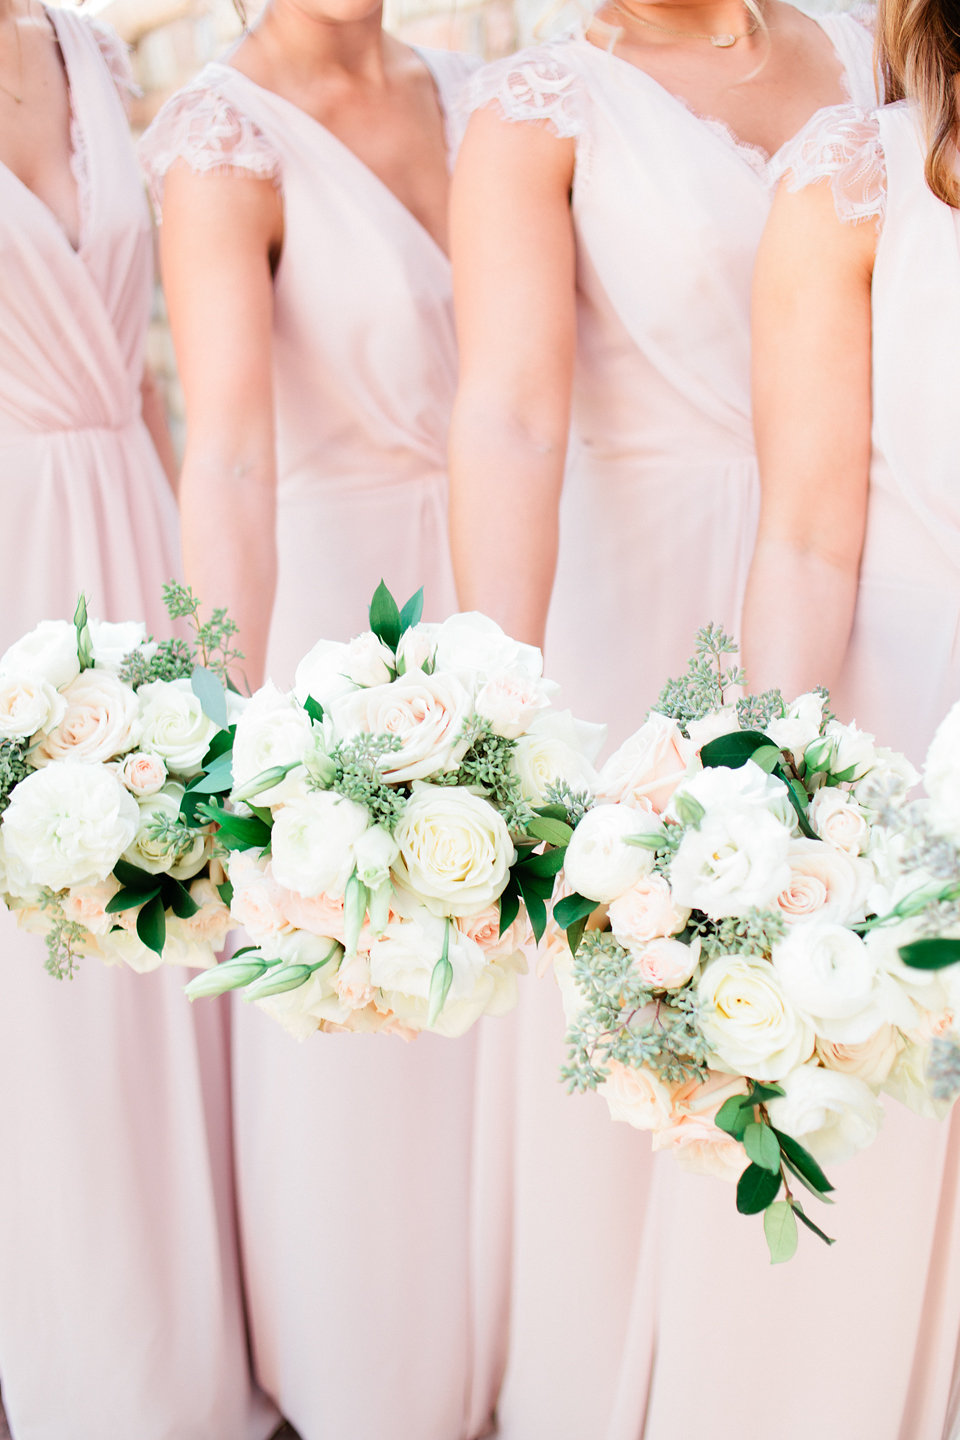 Blush Bridesmaids Dresses and blush and white bouquets  Blush Wedding at TPC Sawgrass Wedding Ponte Vedra Beach  Jacksonville Wedding Planner Blue Ribbon Weddings  Jacksonville Wedding Photographer Debra Eby Photography  Wedding Ceremony & Reception at TPC Sawgrass Jacksonville